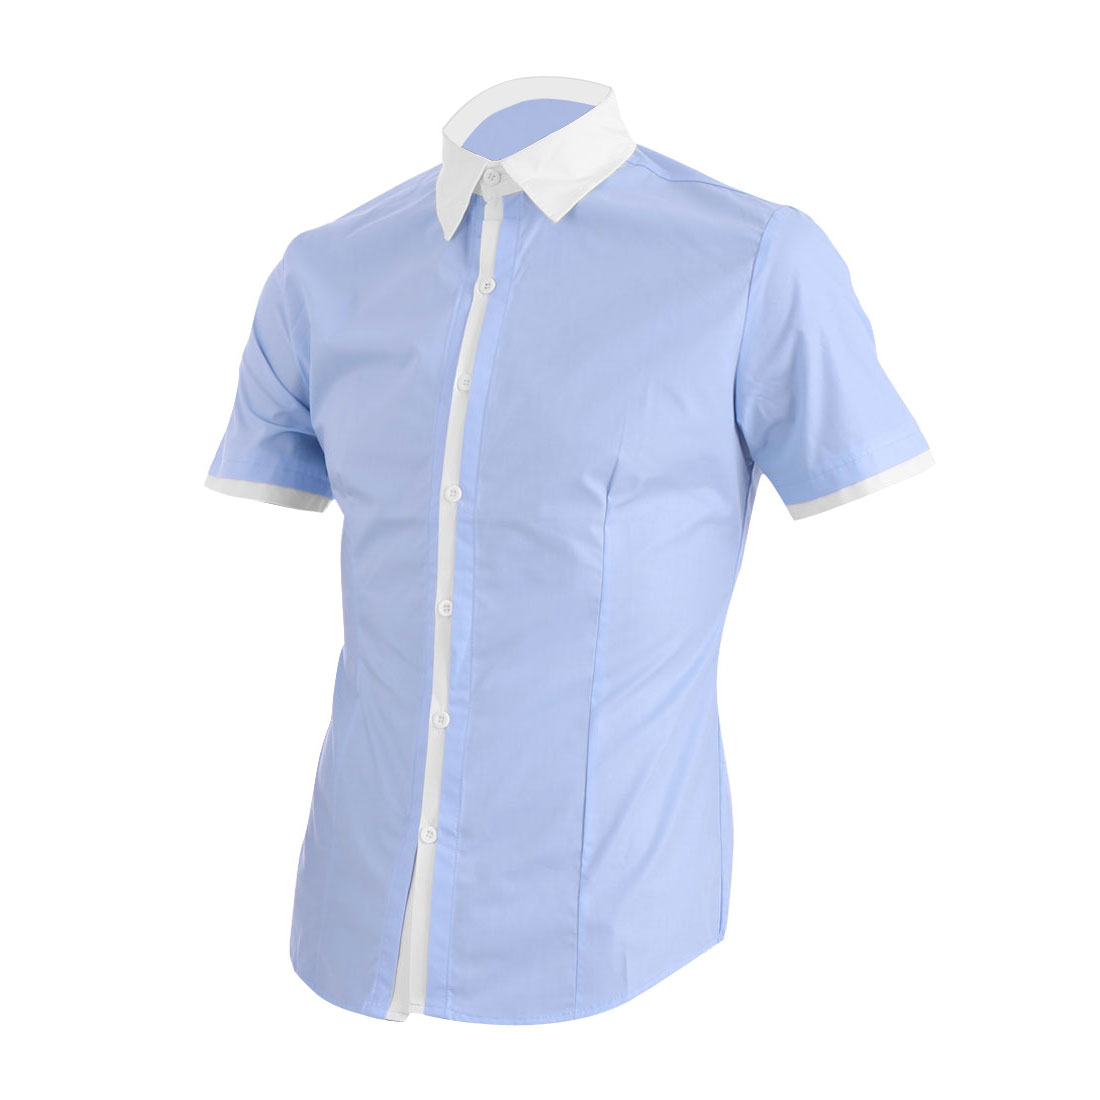 Men Point Collar Button Closure Short Sleeve Splice Shirt Light Blue M